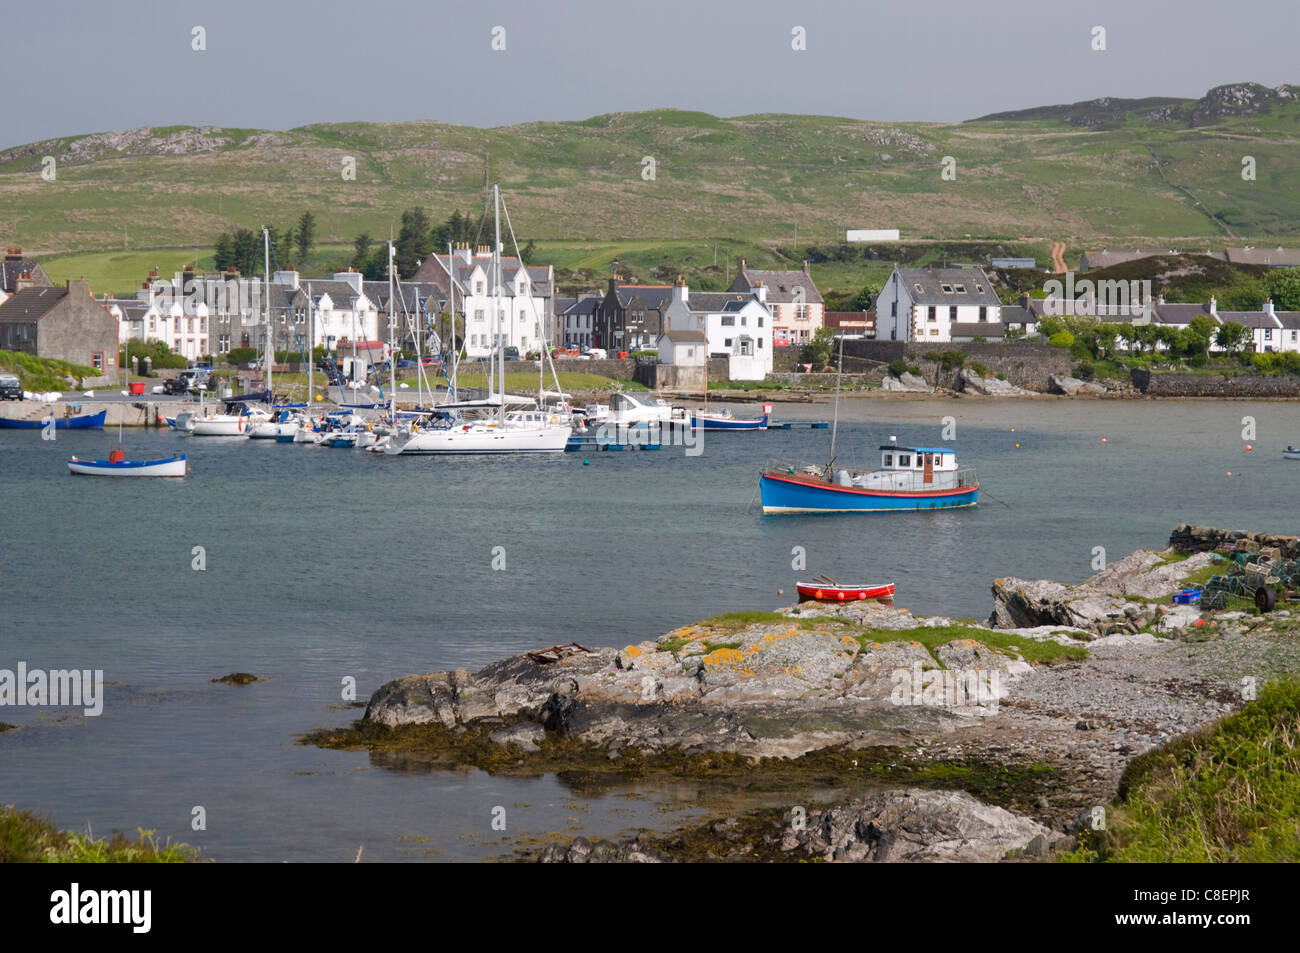 Fishing boats in the harbour at Port Ellen, Isle of Islay, Inner Hebrides, Scotland, United Kingdom - Stock Image